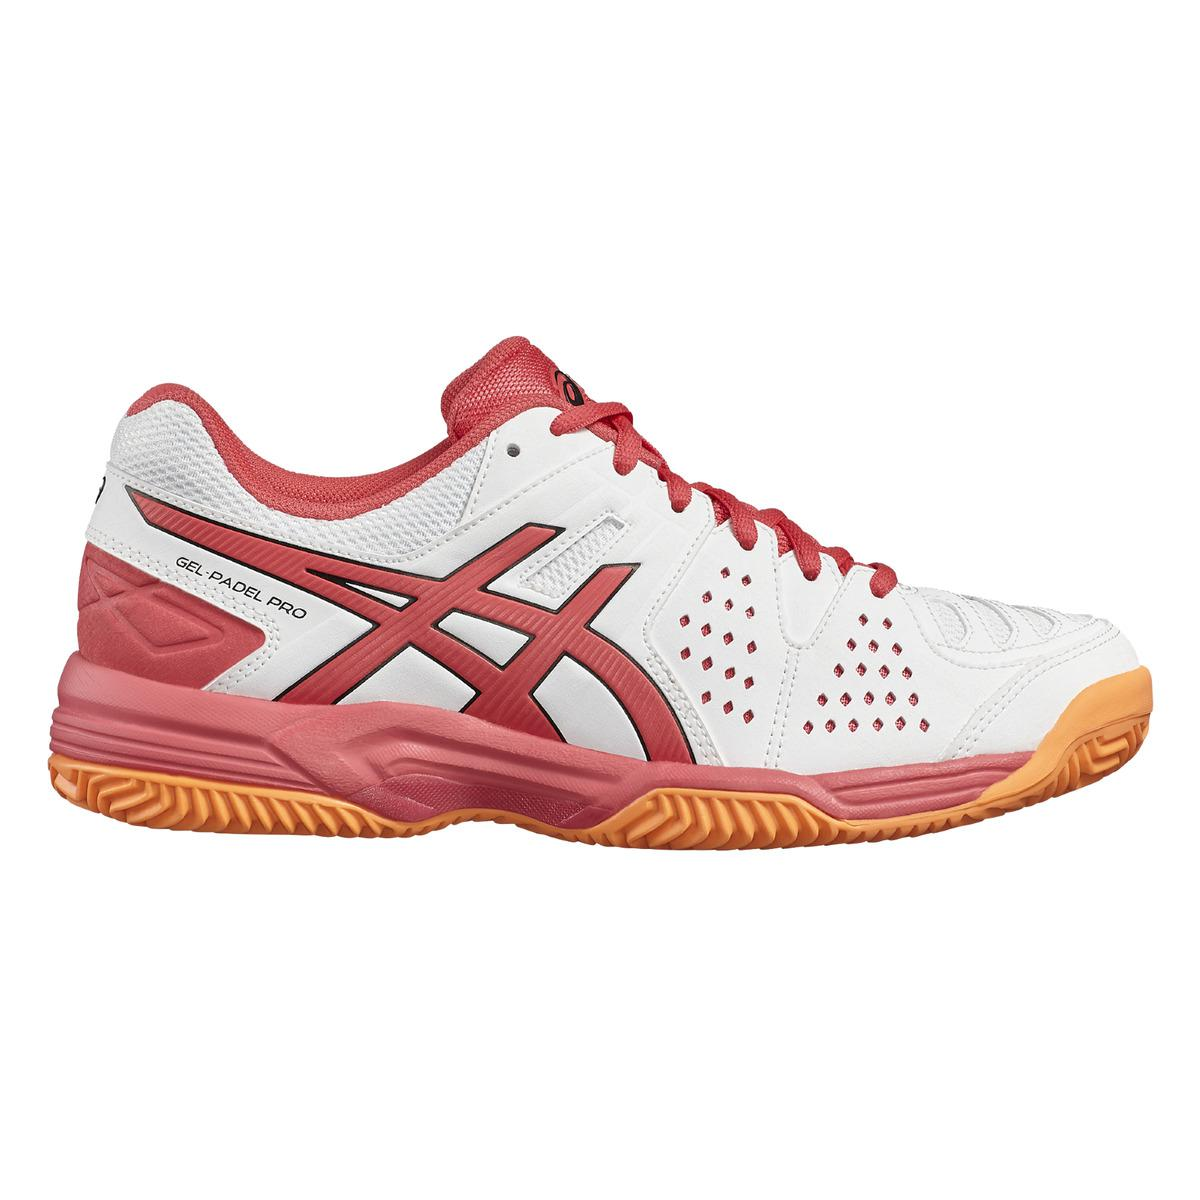 4f6d7caec9f5 Asics Gel-padel Pro 3 Sg Paddle Tennis Shoes in Pink - Lyst